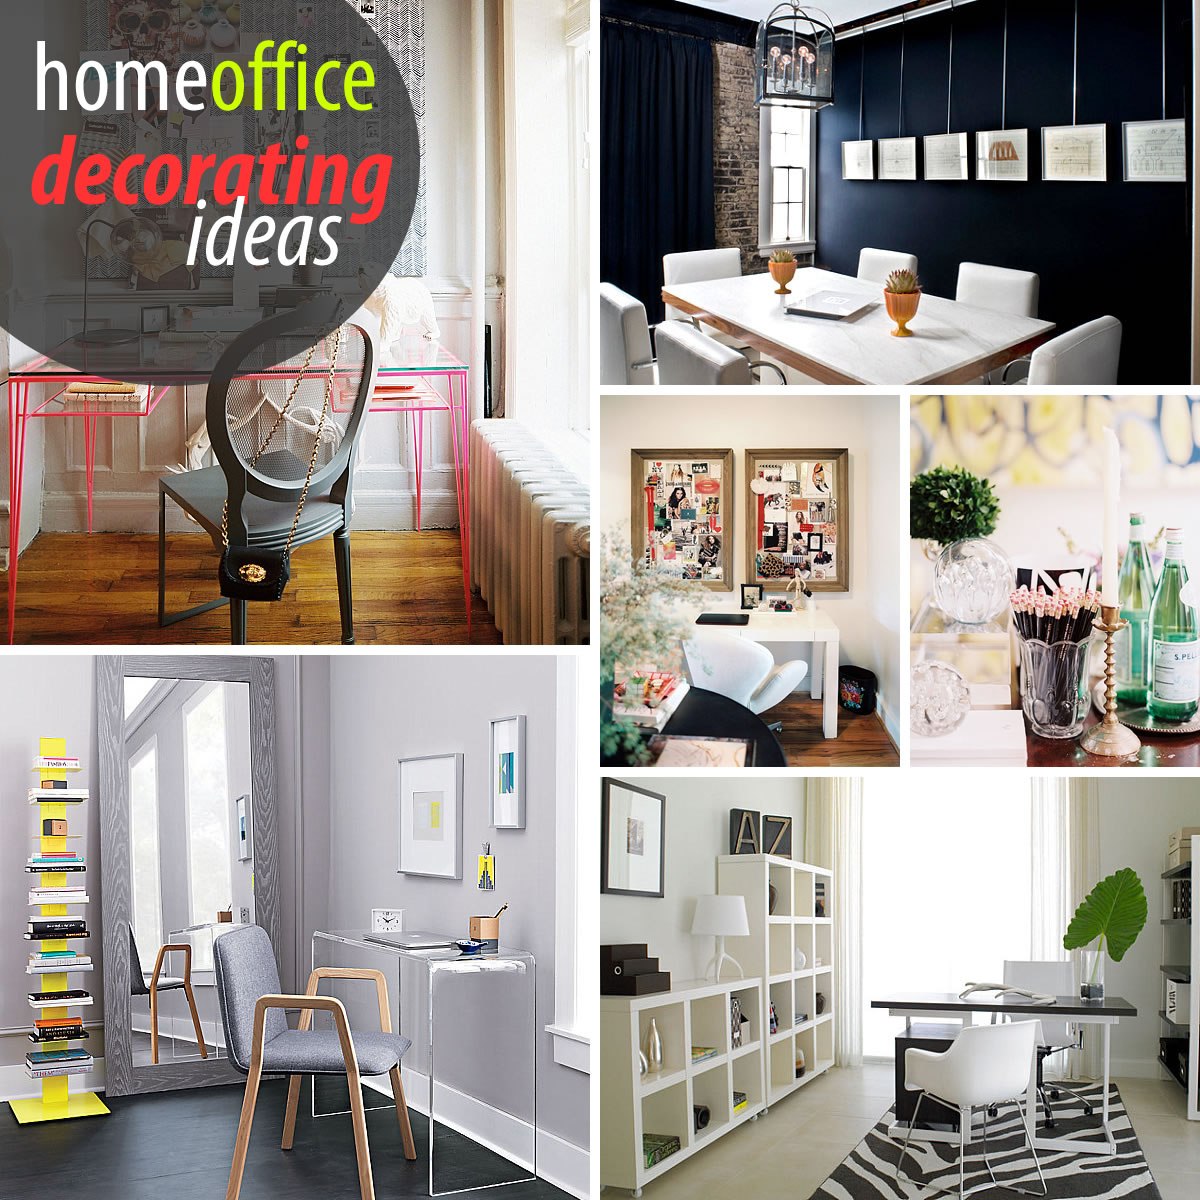 Swanky Home Office Decorating Ideas Home Decor Ideas home decor Creative Home Decor Ideas